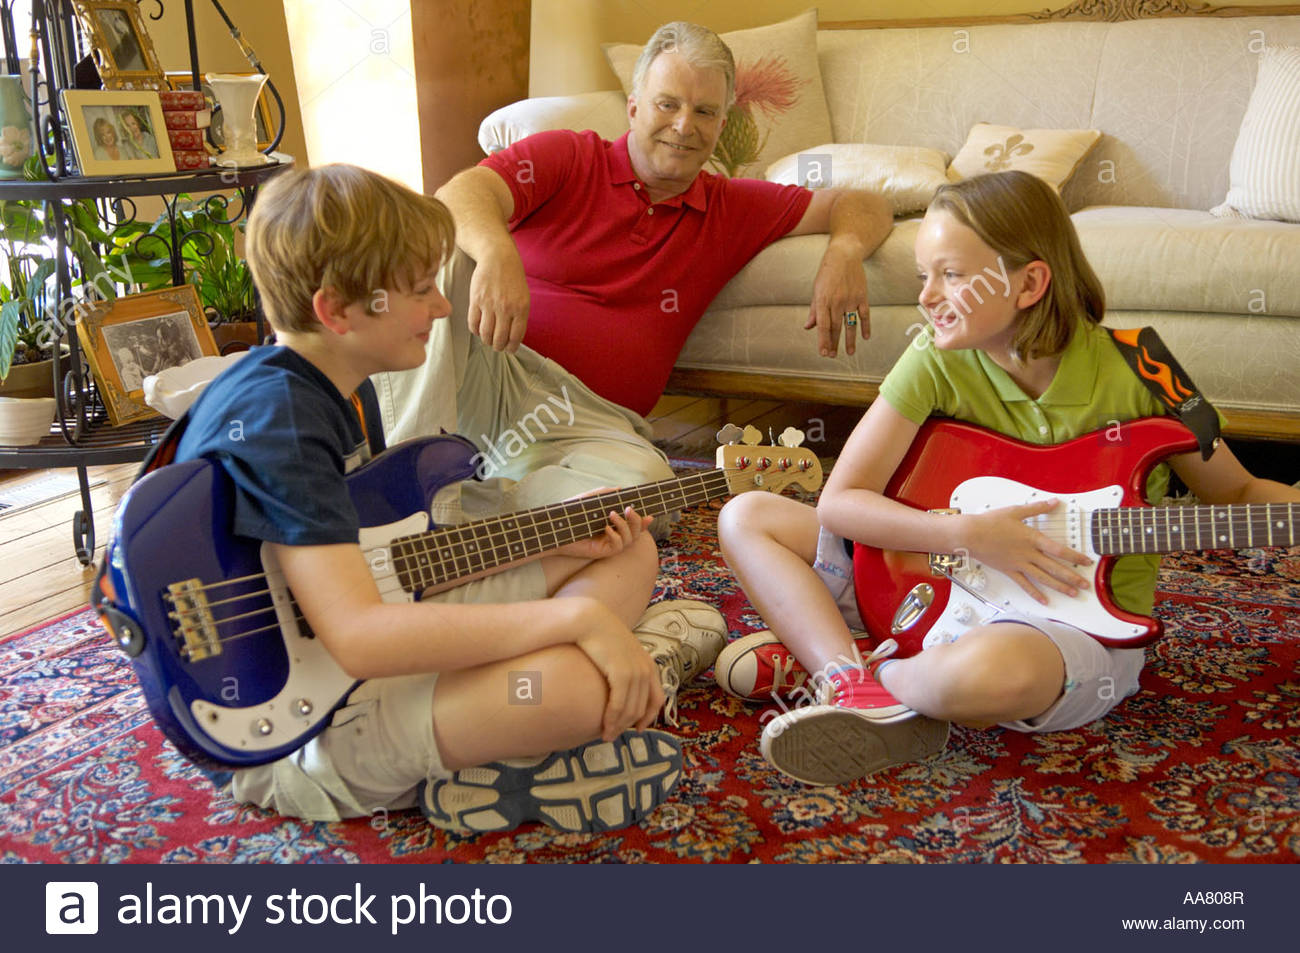 two young children learning to play guitar stock photo 12544102 alamy. Black Bedroom Furniture Sets. Home Design Ideas